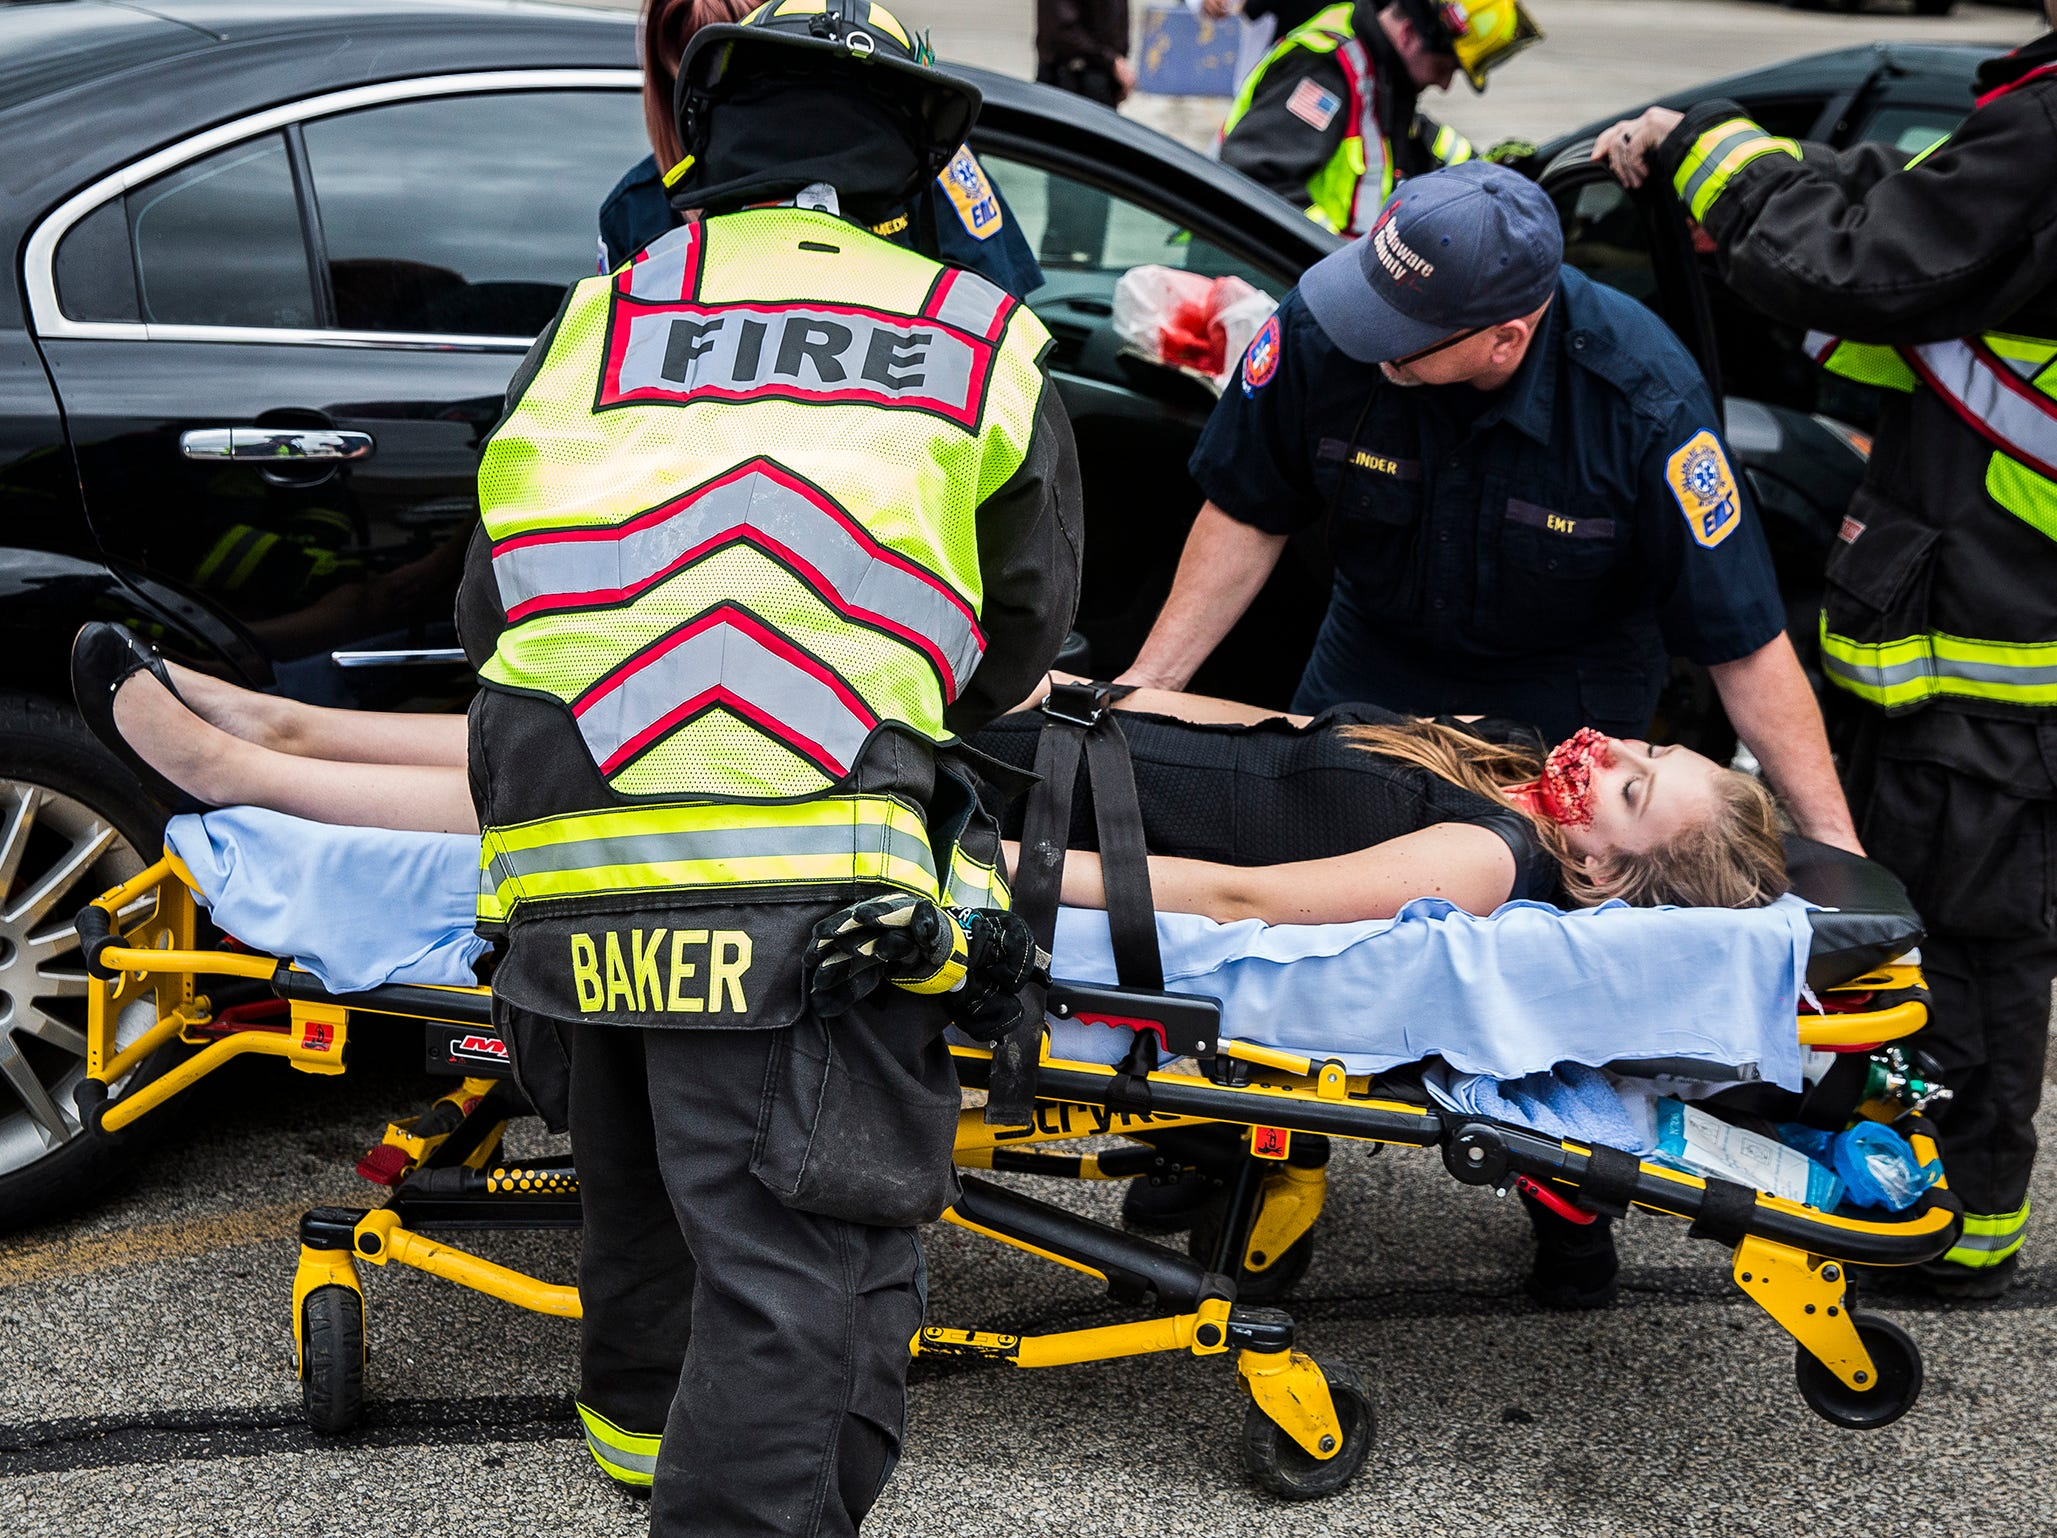 Volunteer, student actors worked with police and firefighters during the 2019 Living Proof Crash Re-Enactment at Central Wednesday. The event seeks to raise awareness of the dangers of driving while intoxicated with re-enactments of crashes, court scenes and funerals. Makeup artist Brian Blair donated time and material for this year's Living Proof.